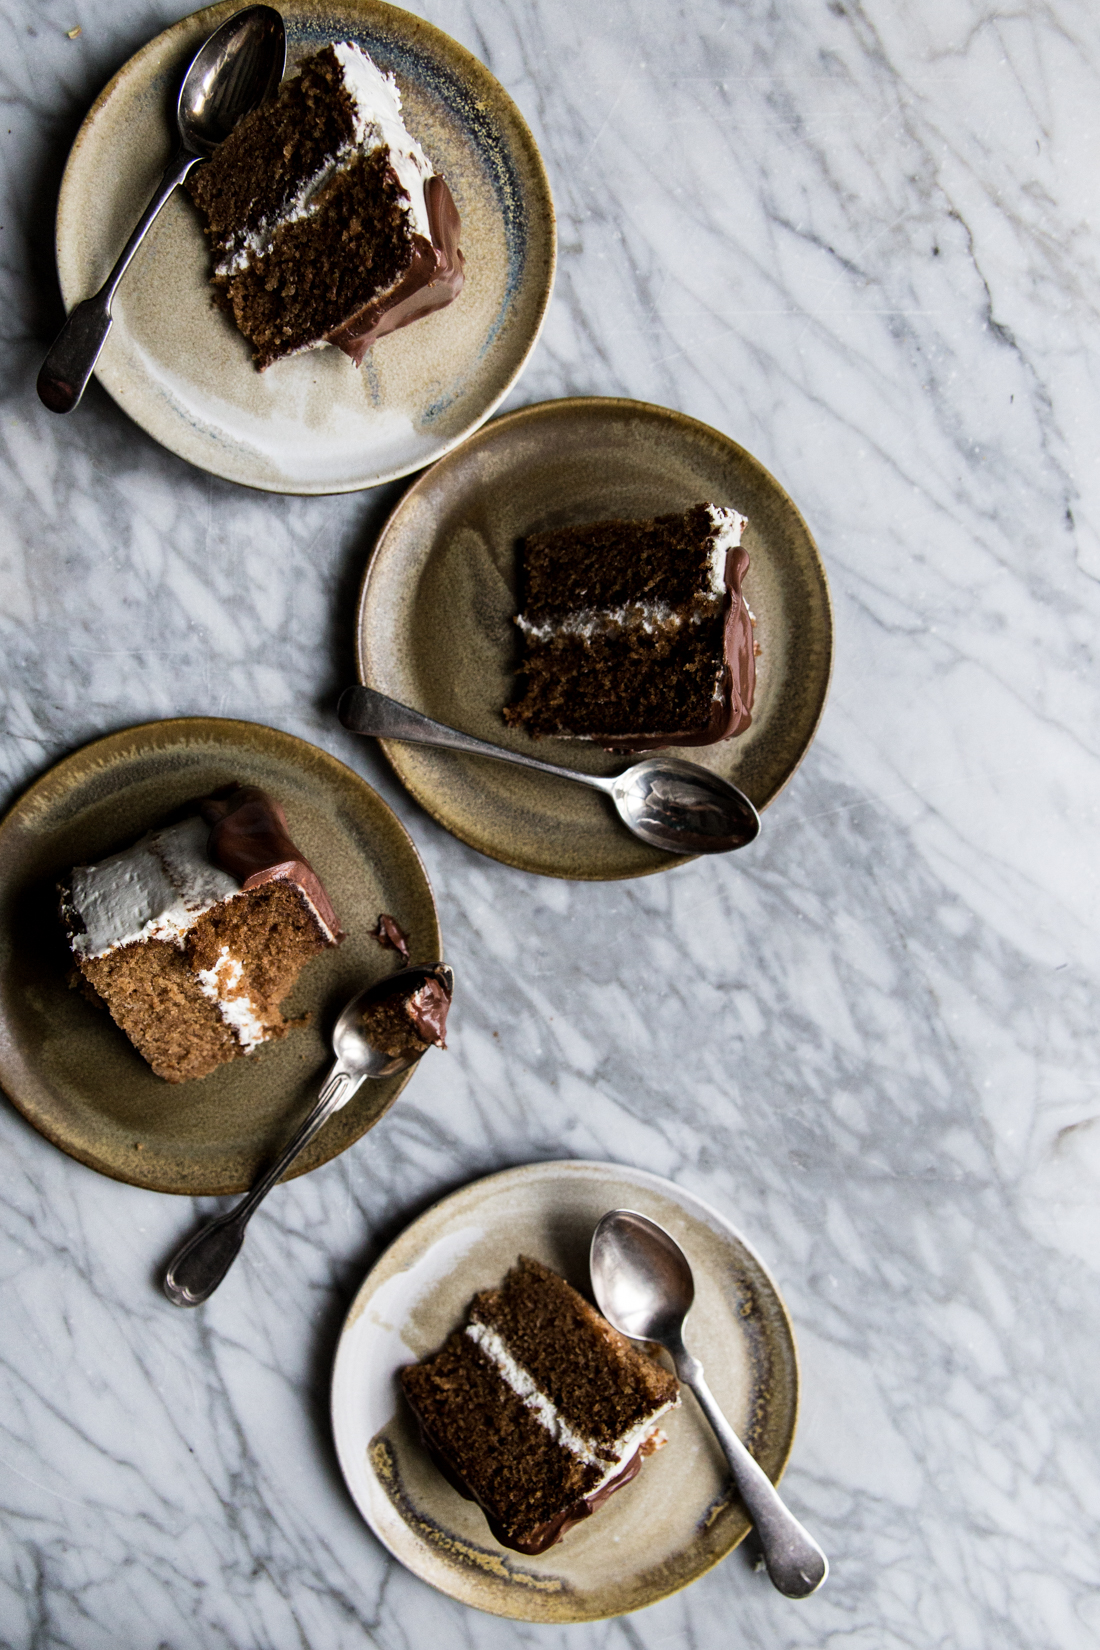 layer-cake-poires-cardamone-glacage-mascarpone-et-vanille-coulant-au-chocolat-ophelies-kitchen-book-ophelie-lauret-24